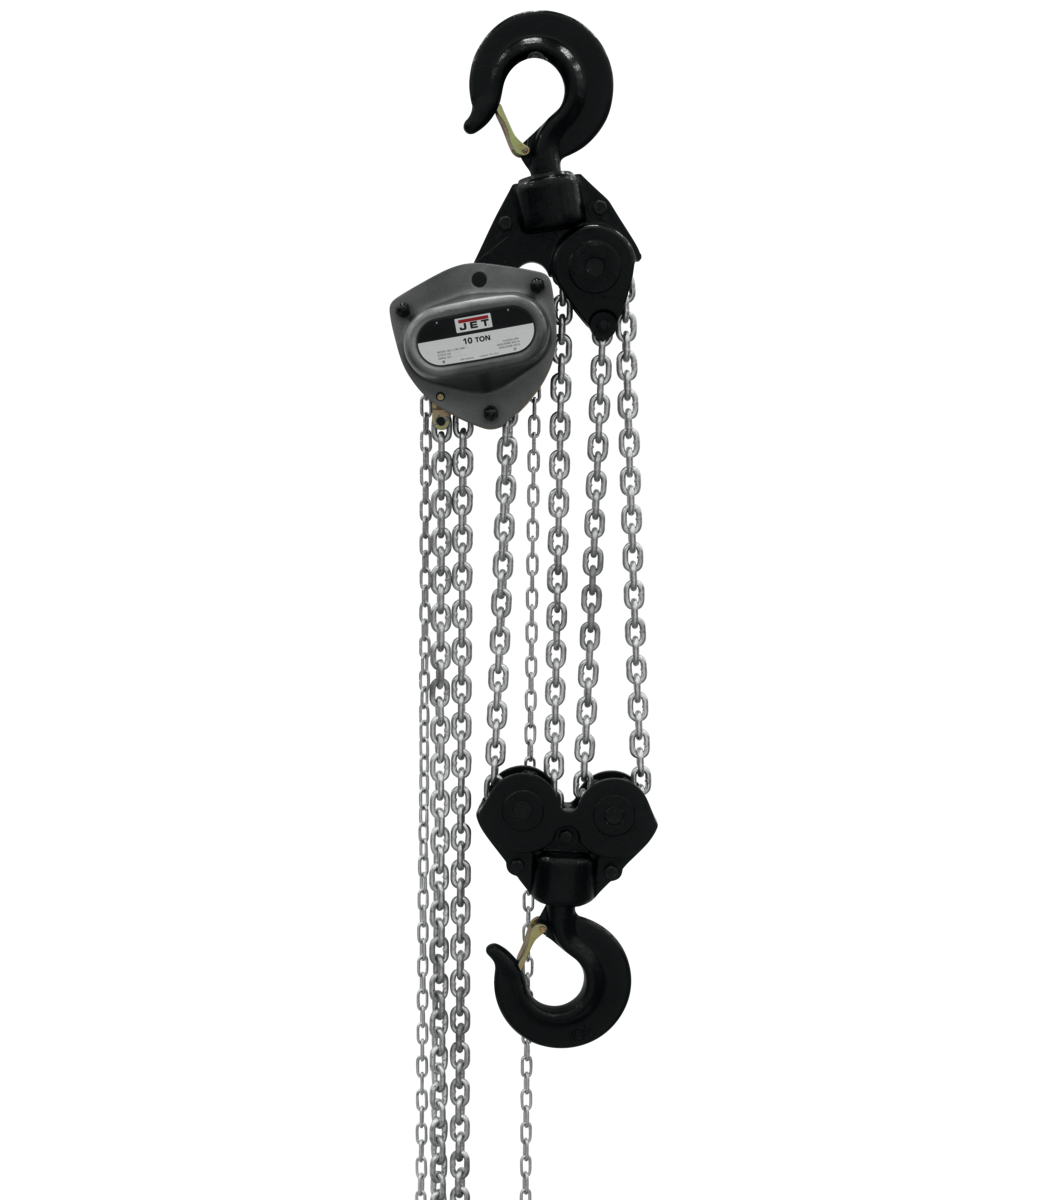 L-100-1000-15, 10-Ton Hand Chain Hoist With 15' Lift